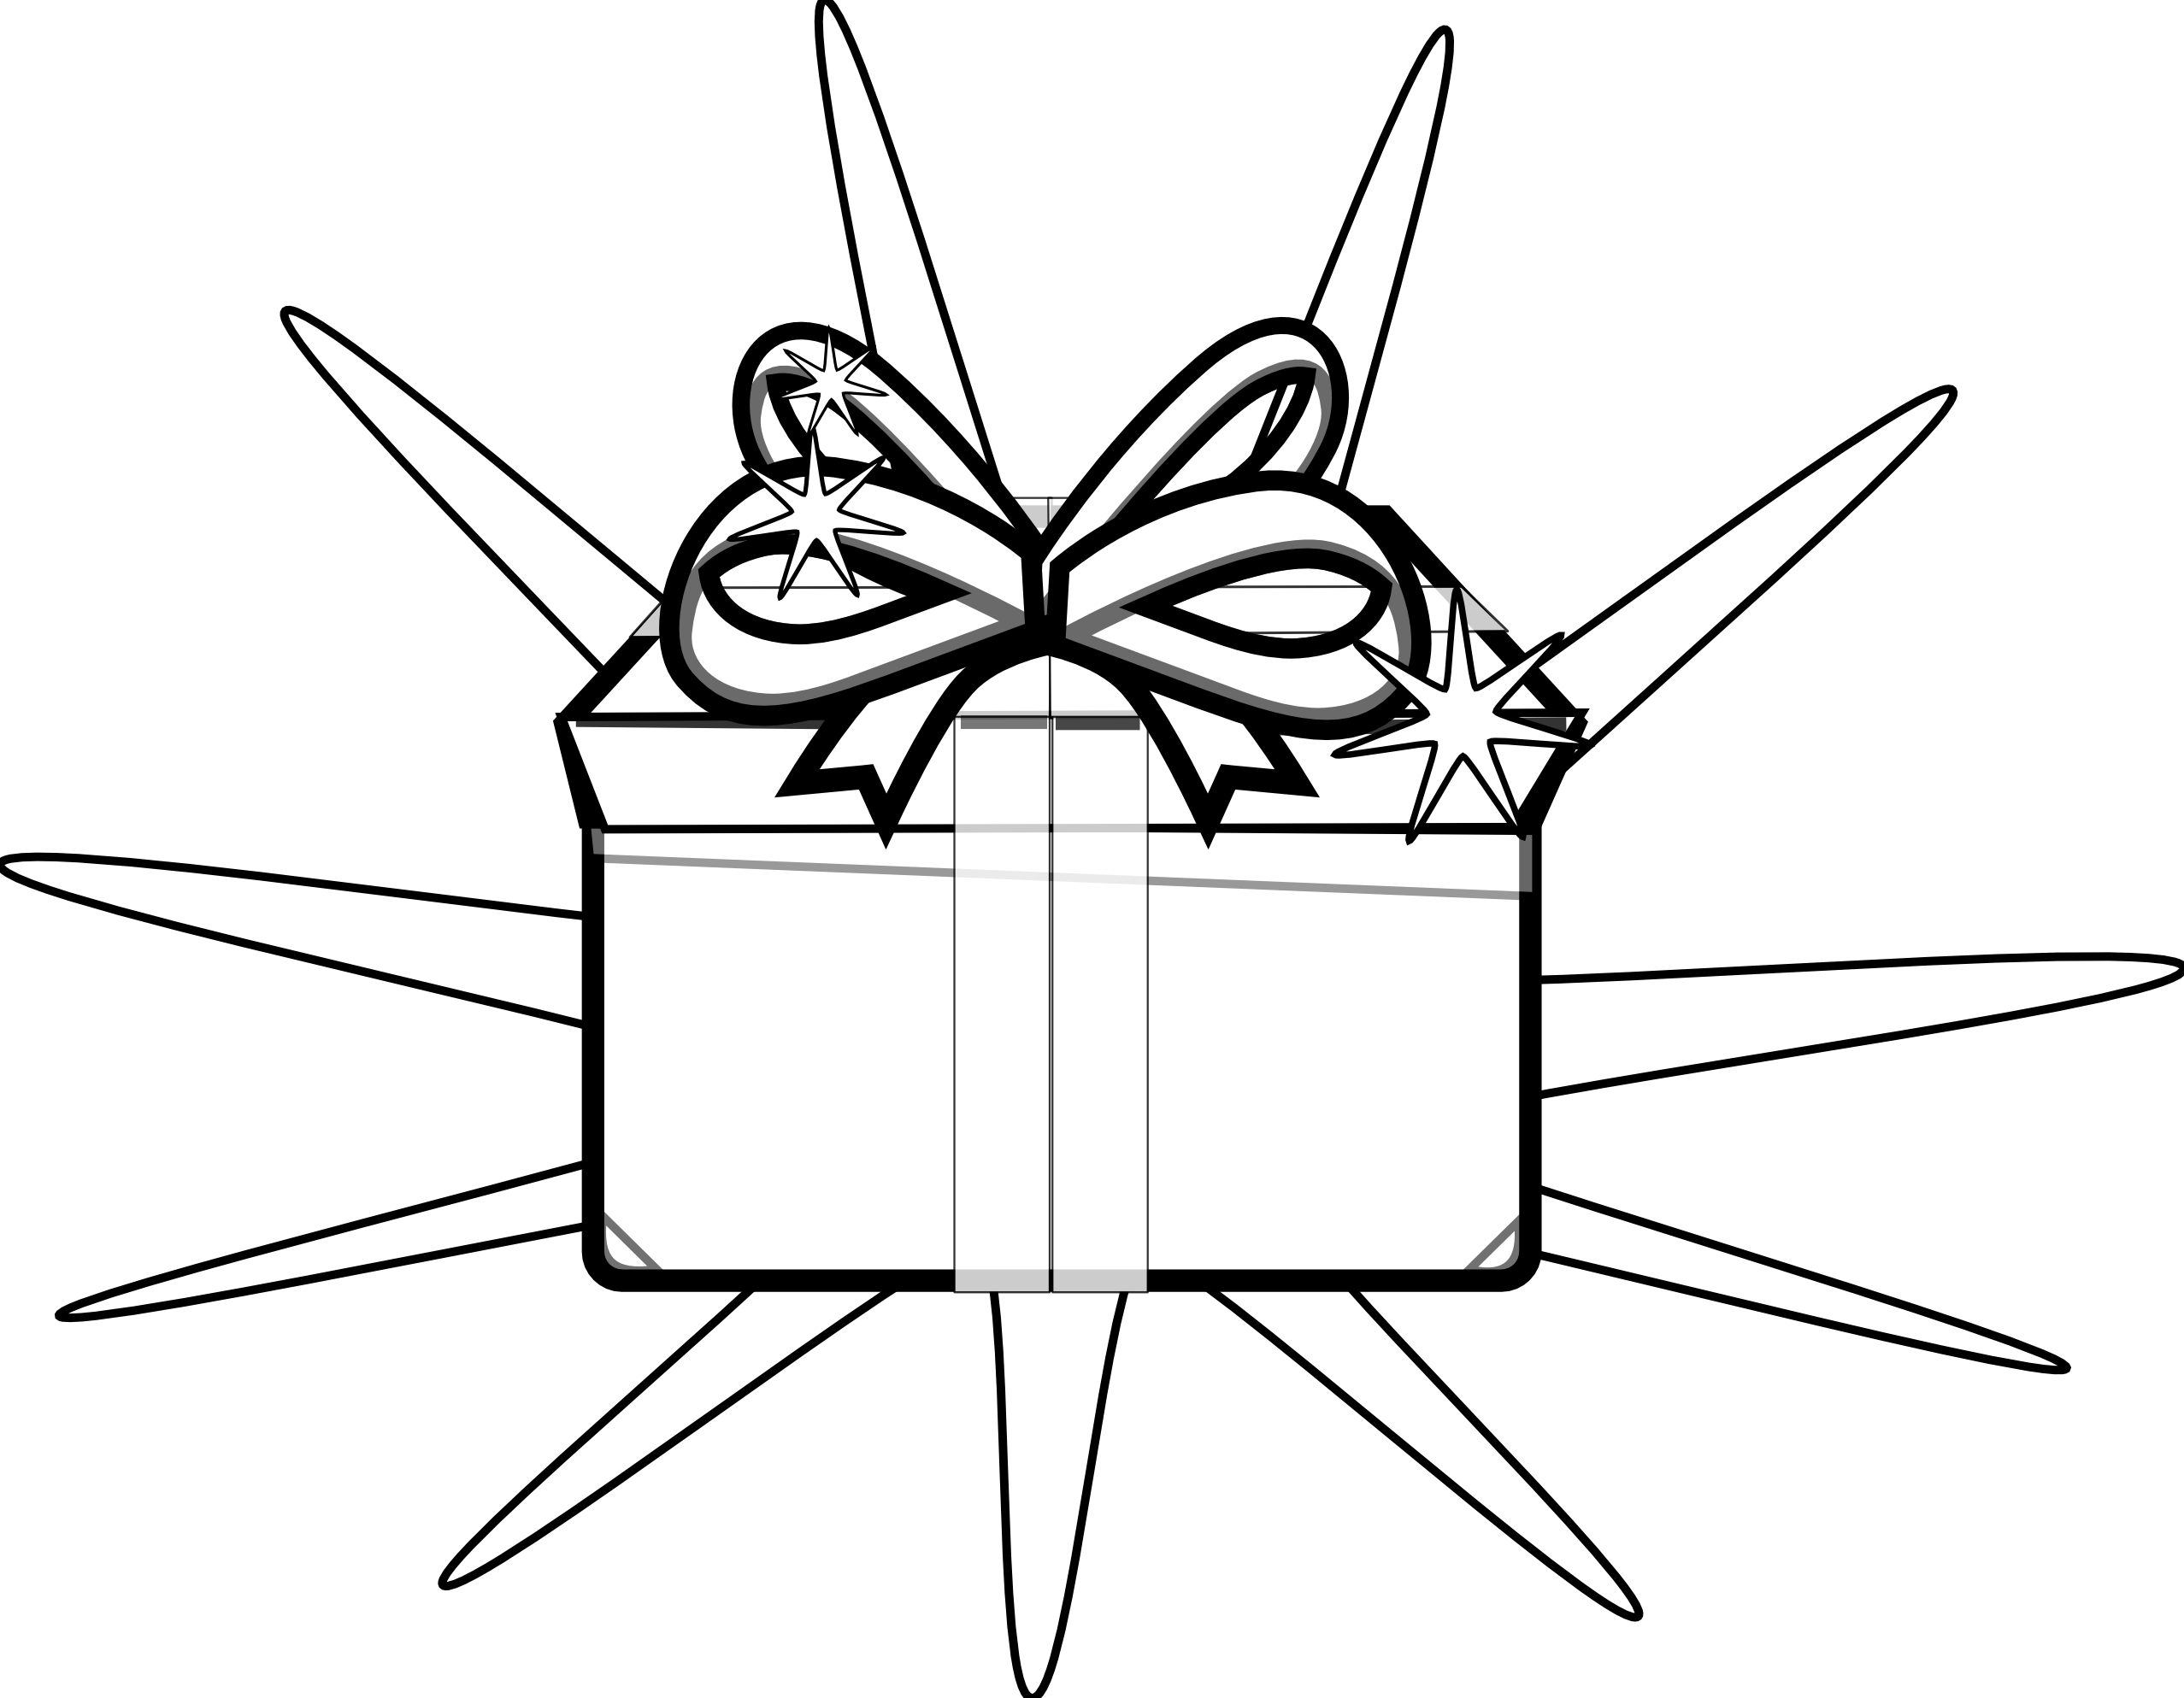 Christmas tree with presents clipart black and white picture royalty free library Gift Clipart Black And White | Clipart Panda - Free Clipart Images picture royalty free library